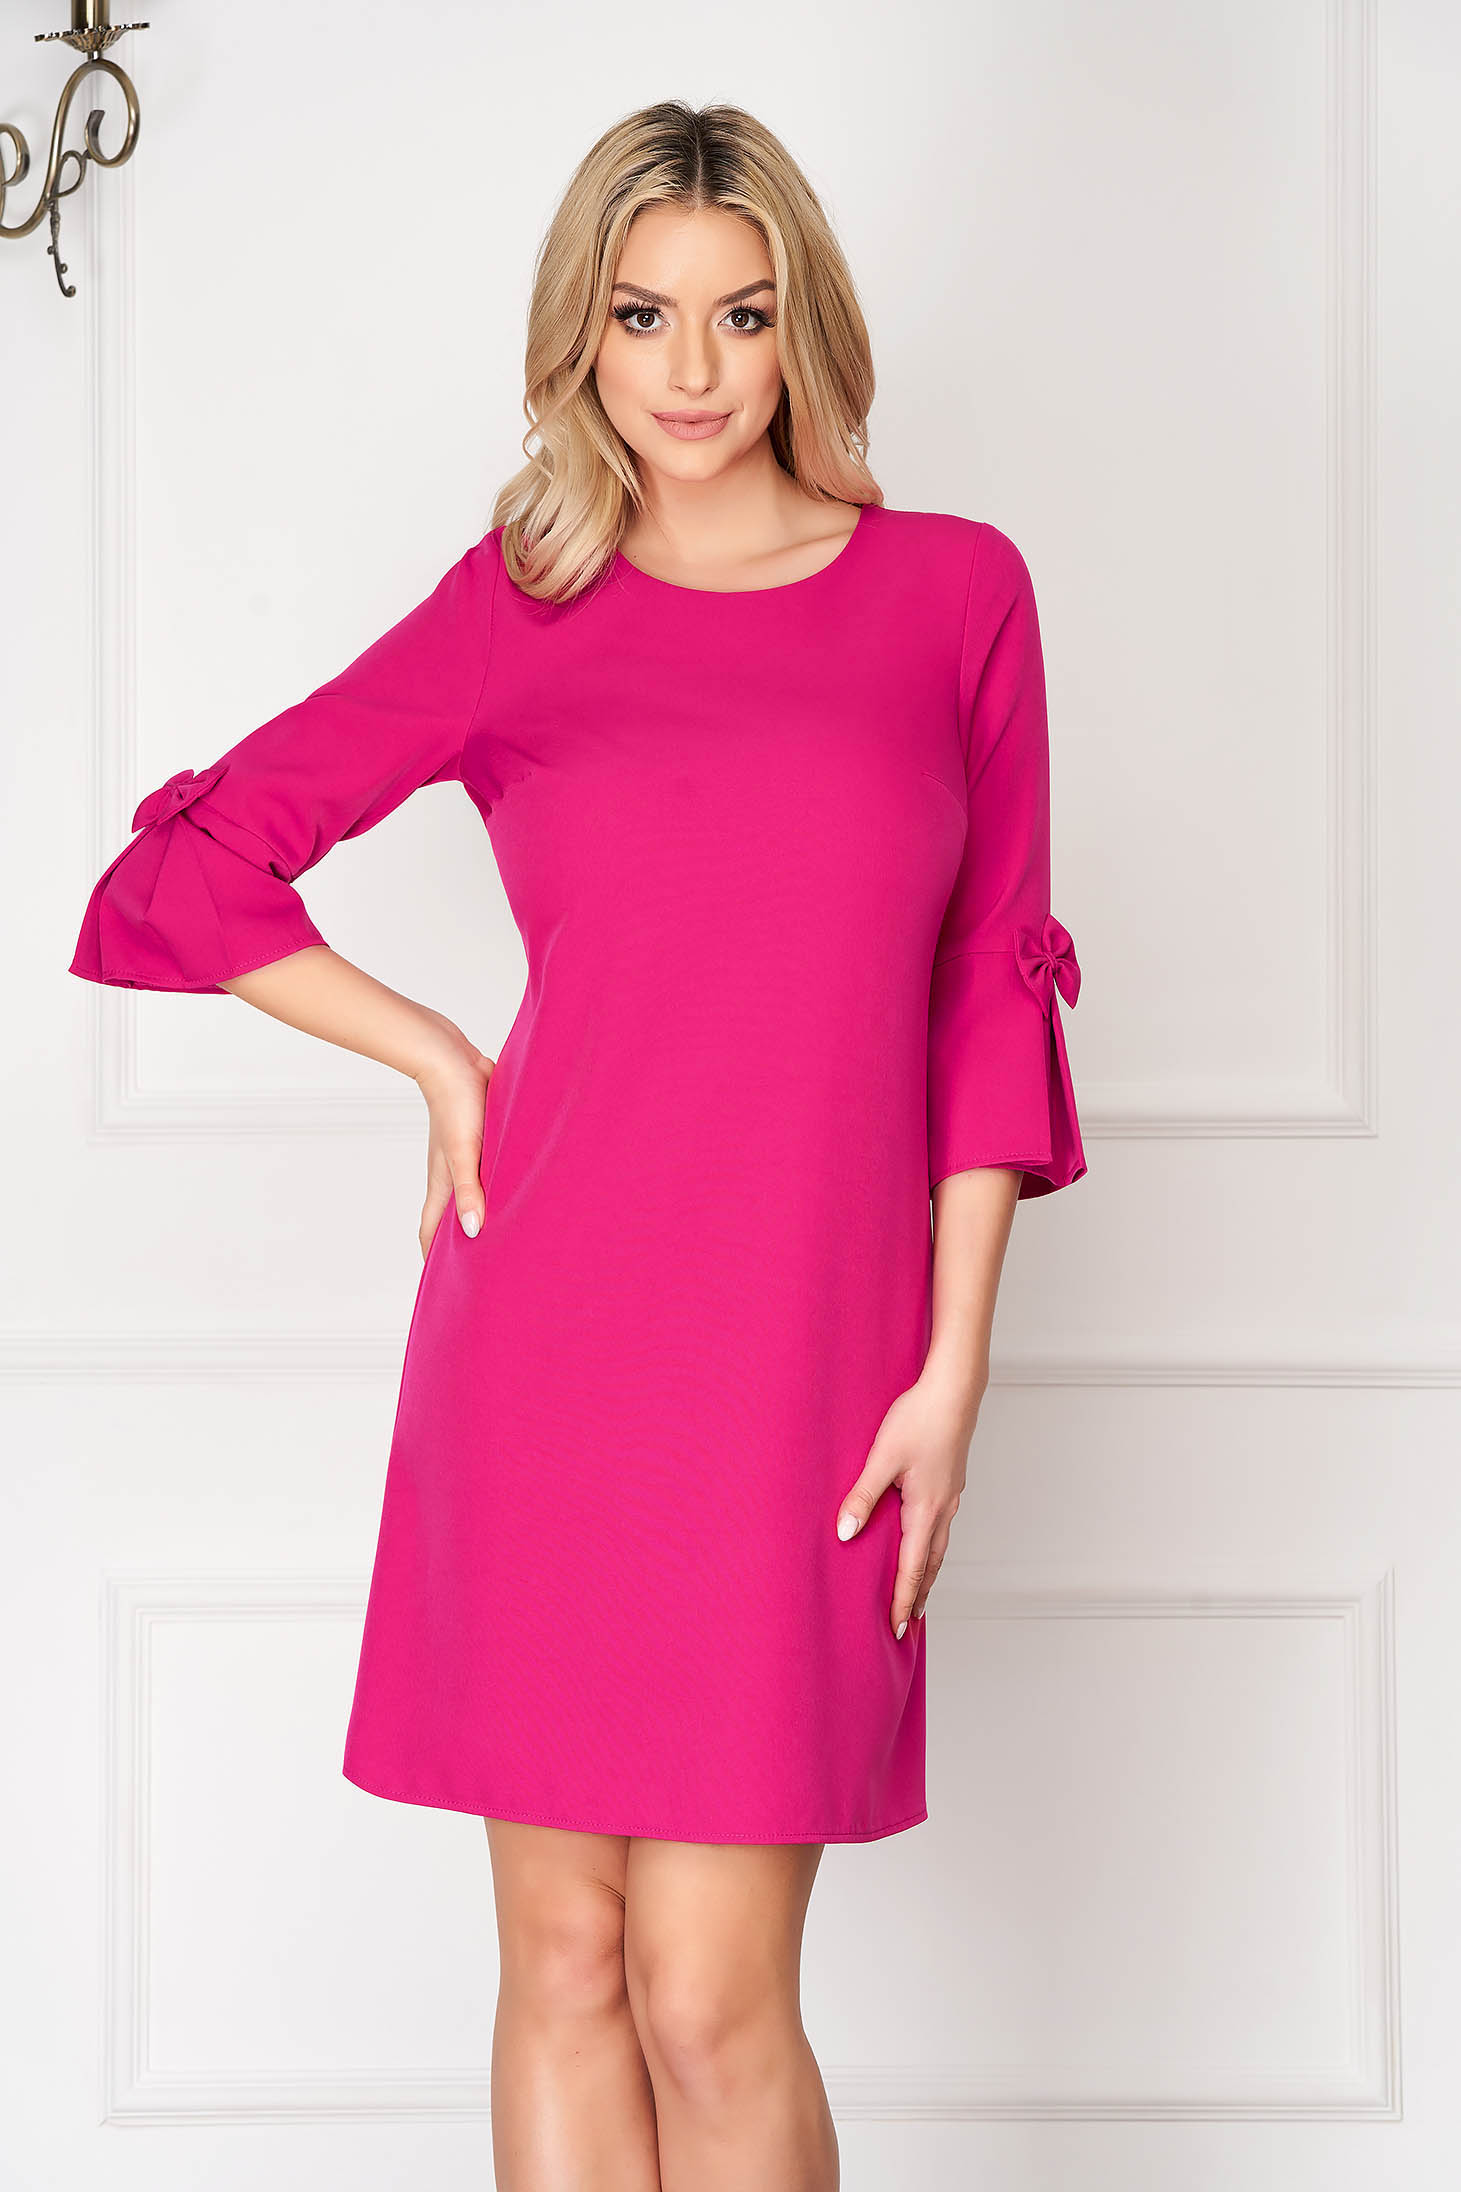 Pink elegant dress straight short cut cloth with 3/4 sleeves